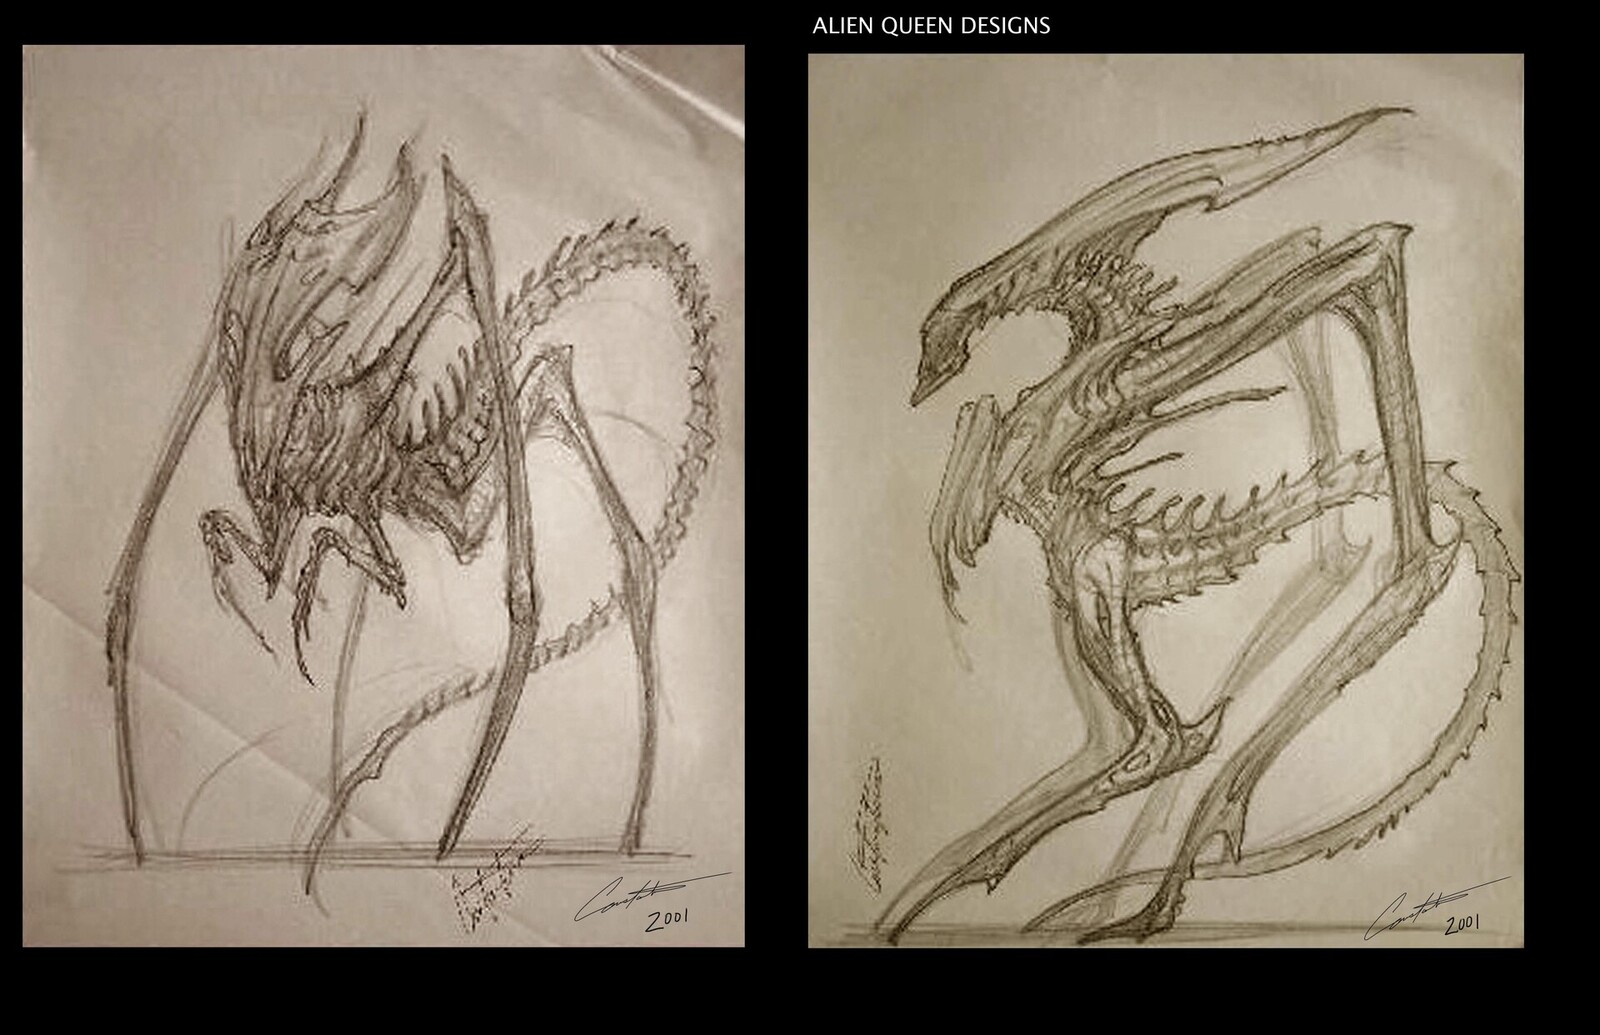 AvP Alien Queen sketches from 2001 done at Steve Johnson's EdgeFX